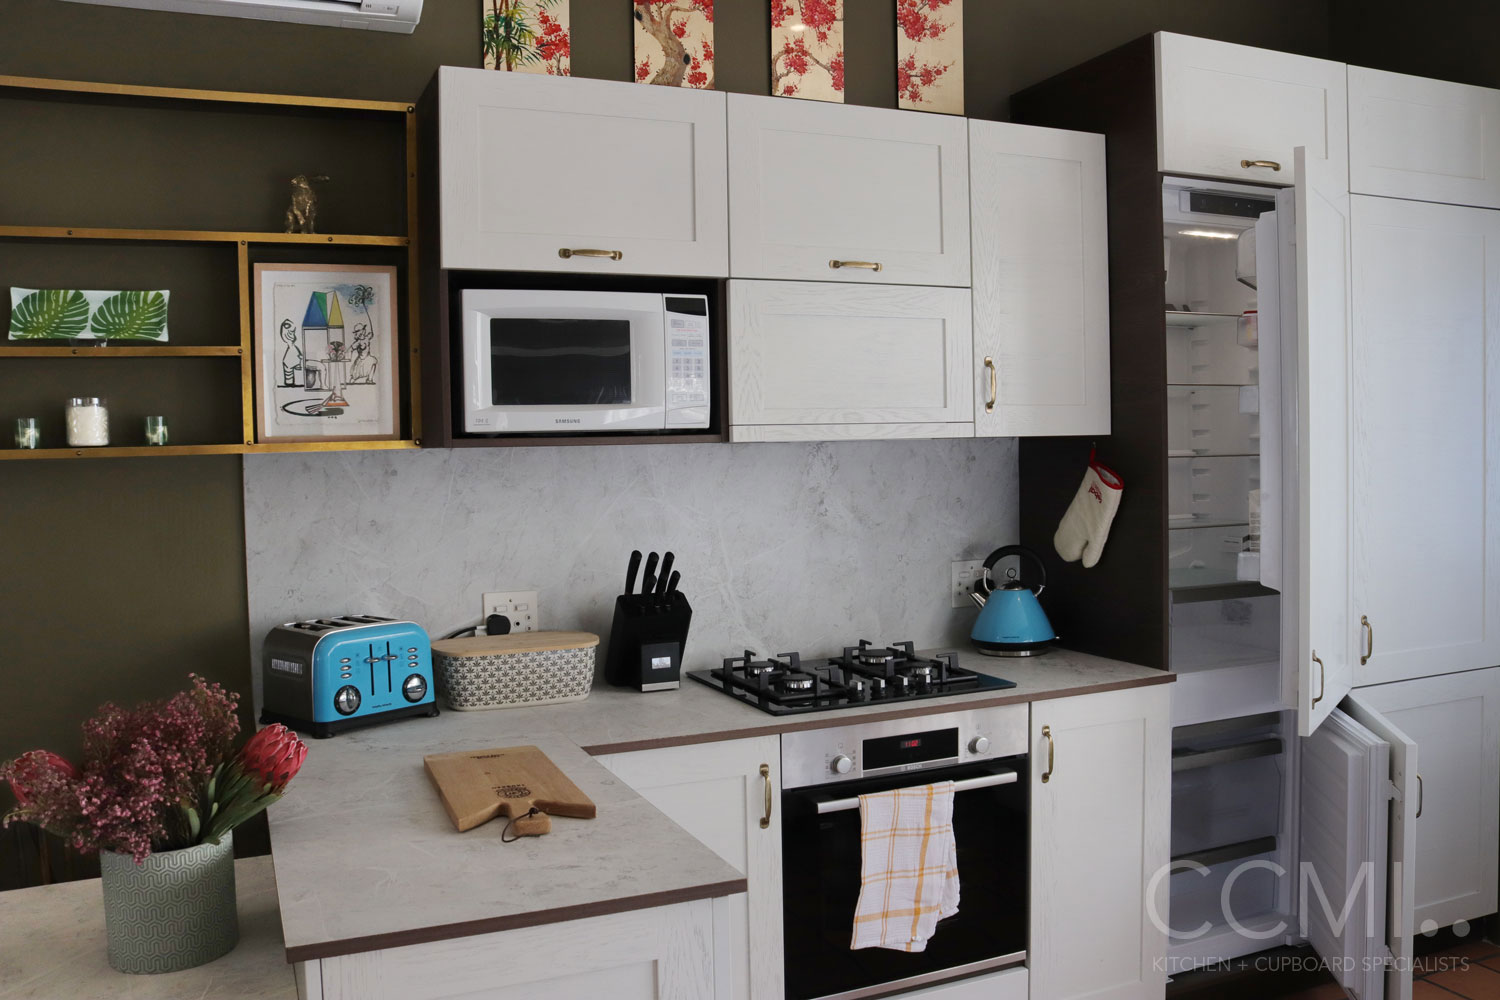 integrated large appliances (such as this fridge) are cleverly hidden to allow this small kitchen to appear less cluttered